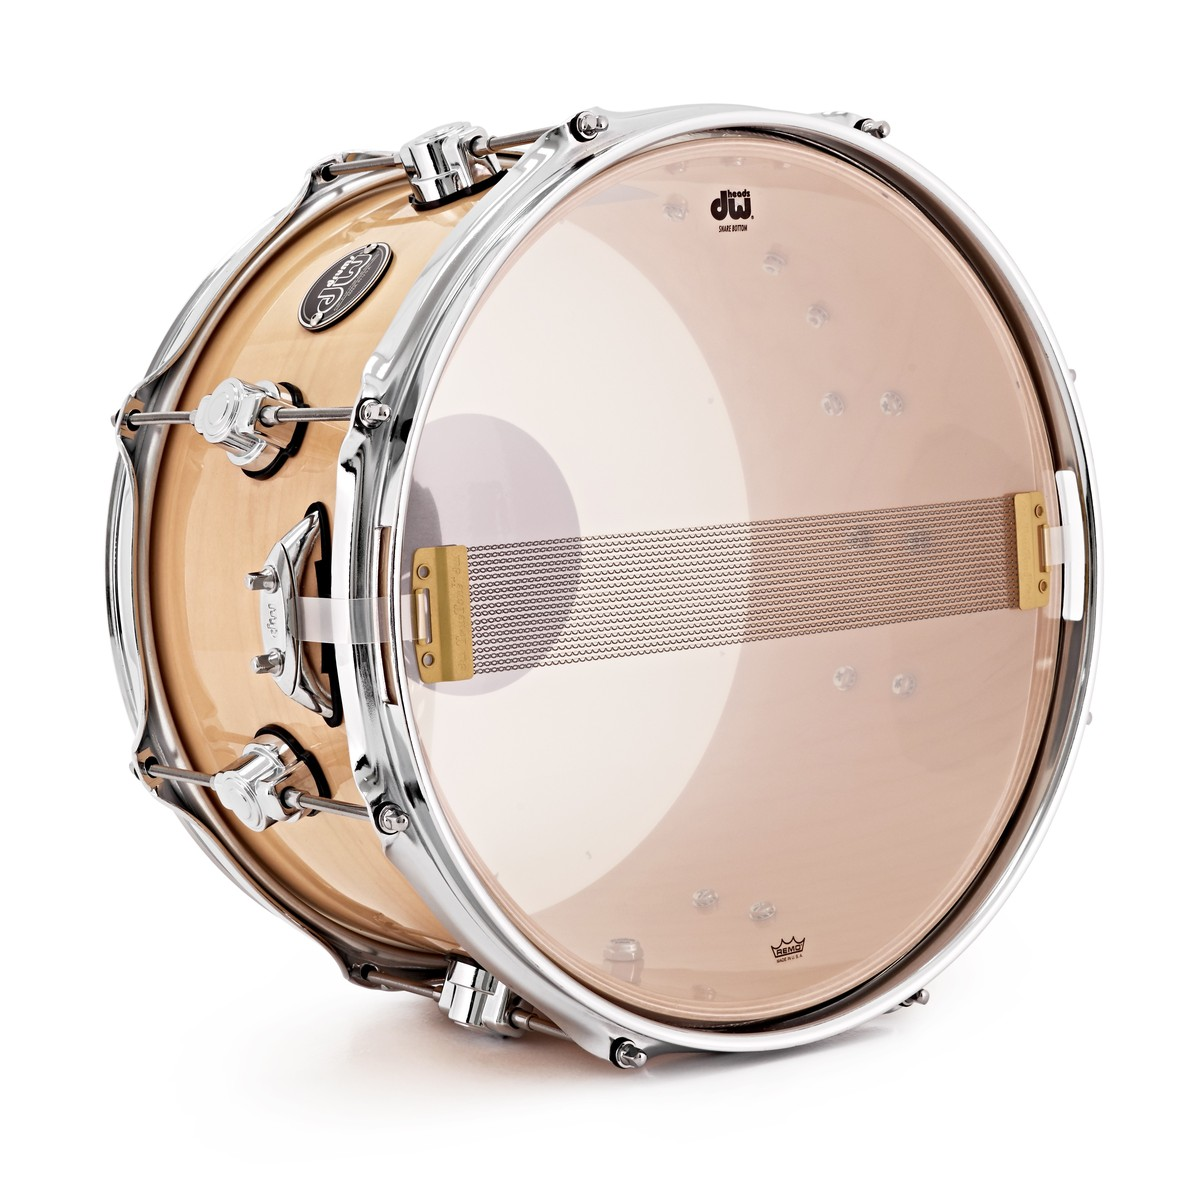 dw drums performance series 13 x 7 snare drum natural at gear4music. Black Bedroom Furniture Sets. Home Design Ideas